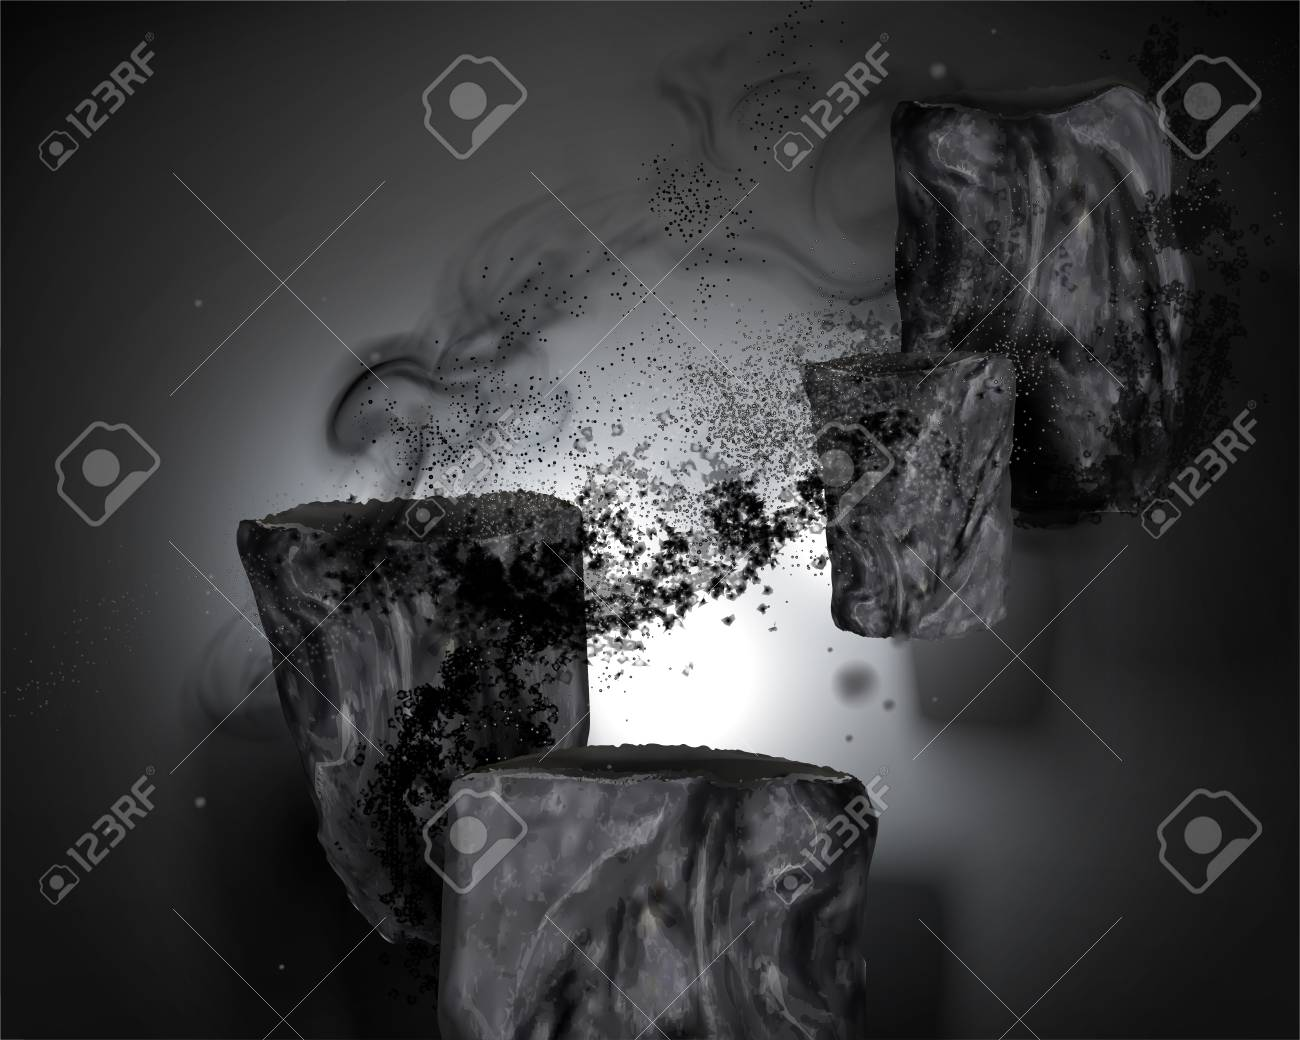 Bamboo charcoal elements with ashes in 3d illustration - 109899956